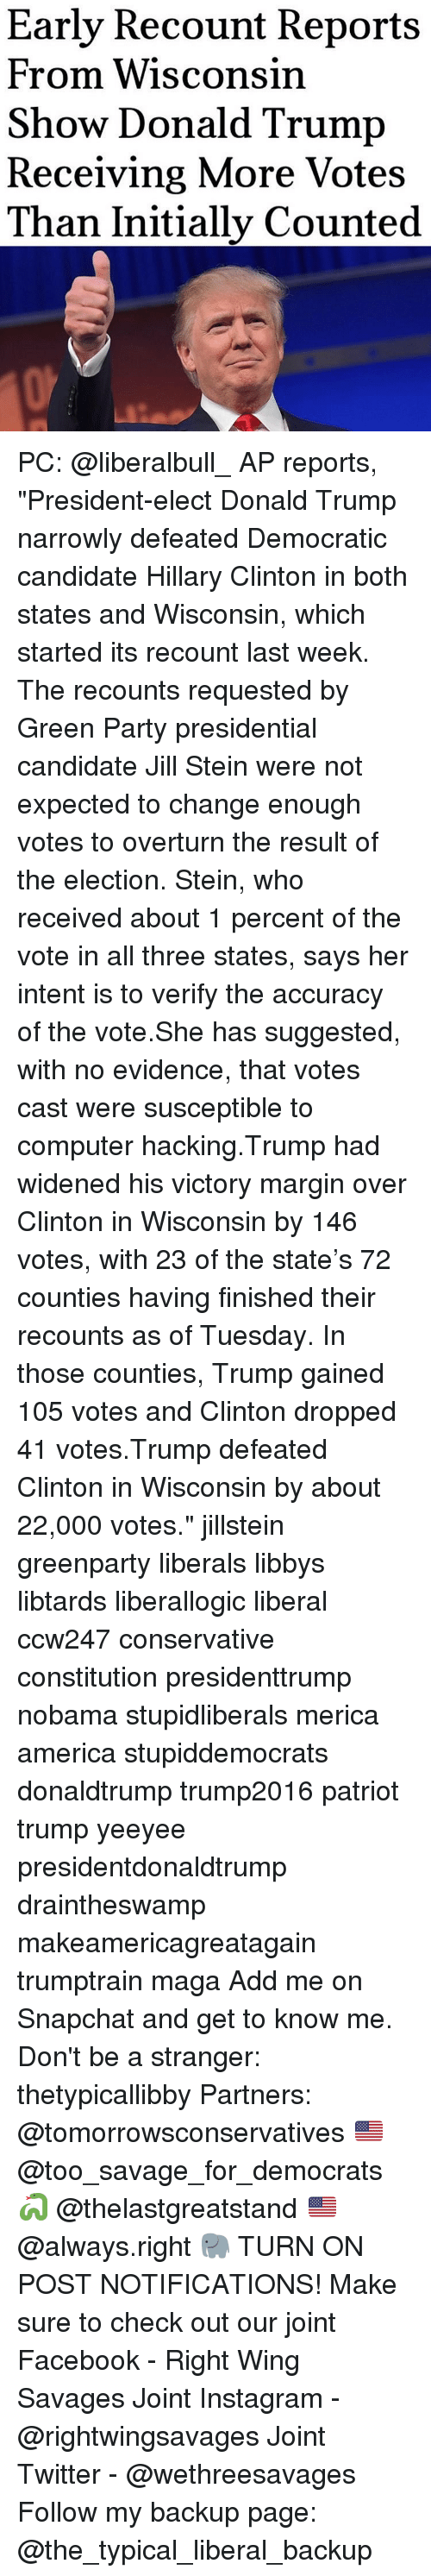 """Marginalize: Early Recount Reports  From Wisconsin  Show Donald Trump  Receiving More Votes  Than Initially Counted PC: @liberalbull_ AP reports, """"President-elect Donald Trump narrowly defeated Democratic candidate Hillary Clinton in both states and Wisconsin, which started its recount last week. The recounts requested by Green Party presidential candidate Jill Stein were not expected to change enough votes to overturn the result of the election. Stein, who received about 1 percent of the vote in all three states, says her intent is to verify the accuracy of the vote.She has suggested, with no evidence, that votes cast were susceptible to computer hacking.Trump had widened his victory margin over Clinton in Wisconsin by 146 votes, with 23 of the state's 72 counties having finished their recounts as of Tuesday. In those counties, Trump gained 105 votes and Clinton dropped 41 votes.Trump defeated Clinton in Wisconsin by about 22,000 votes."""" jillstein greenparty liberals libbys libtards liberallogic liberal ccw247 conservative constitution presidenttrump nobama stupidliberals merica america stupiddemocrats donaldtrump trump2016 patriot trump yeeyee presidentdonaldtrump draintheswamp makeamericagreatagain trumptrain maga Add me on Snapchat and get to know me. Don't be a stranger: thetypicallibby Partners: @tomorrowsconservatives 🇺🇸 @too_savage_for_democrats 🐍 @thelastgreatstand 🇺🇸 @always.right 🐘 TURN ON POST NOTIFICATIONS! Make sure to check out our joint Facebook - Right Wing Savages Joint Instagram - @rightwingsavages Joint Twitter - @wethreesavages Follow my backup page: @the_typical_liberal_backup"""